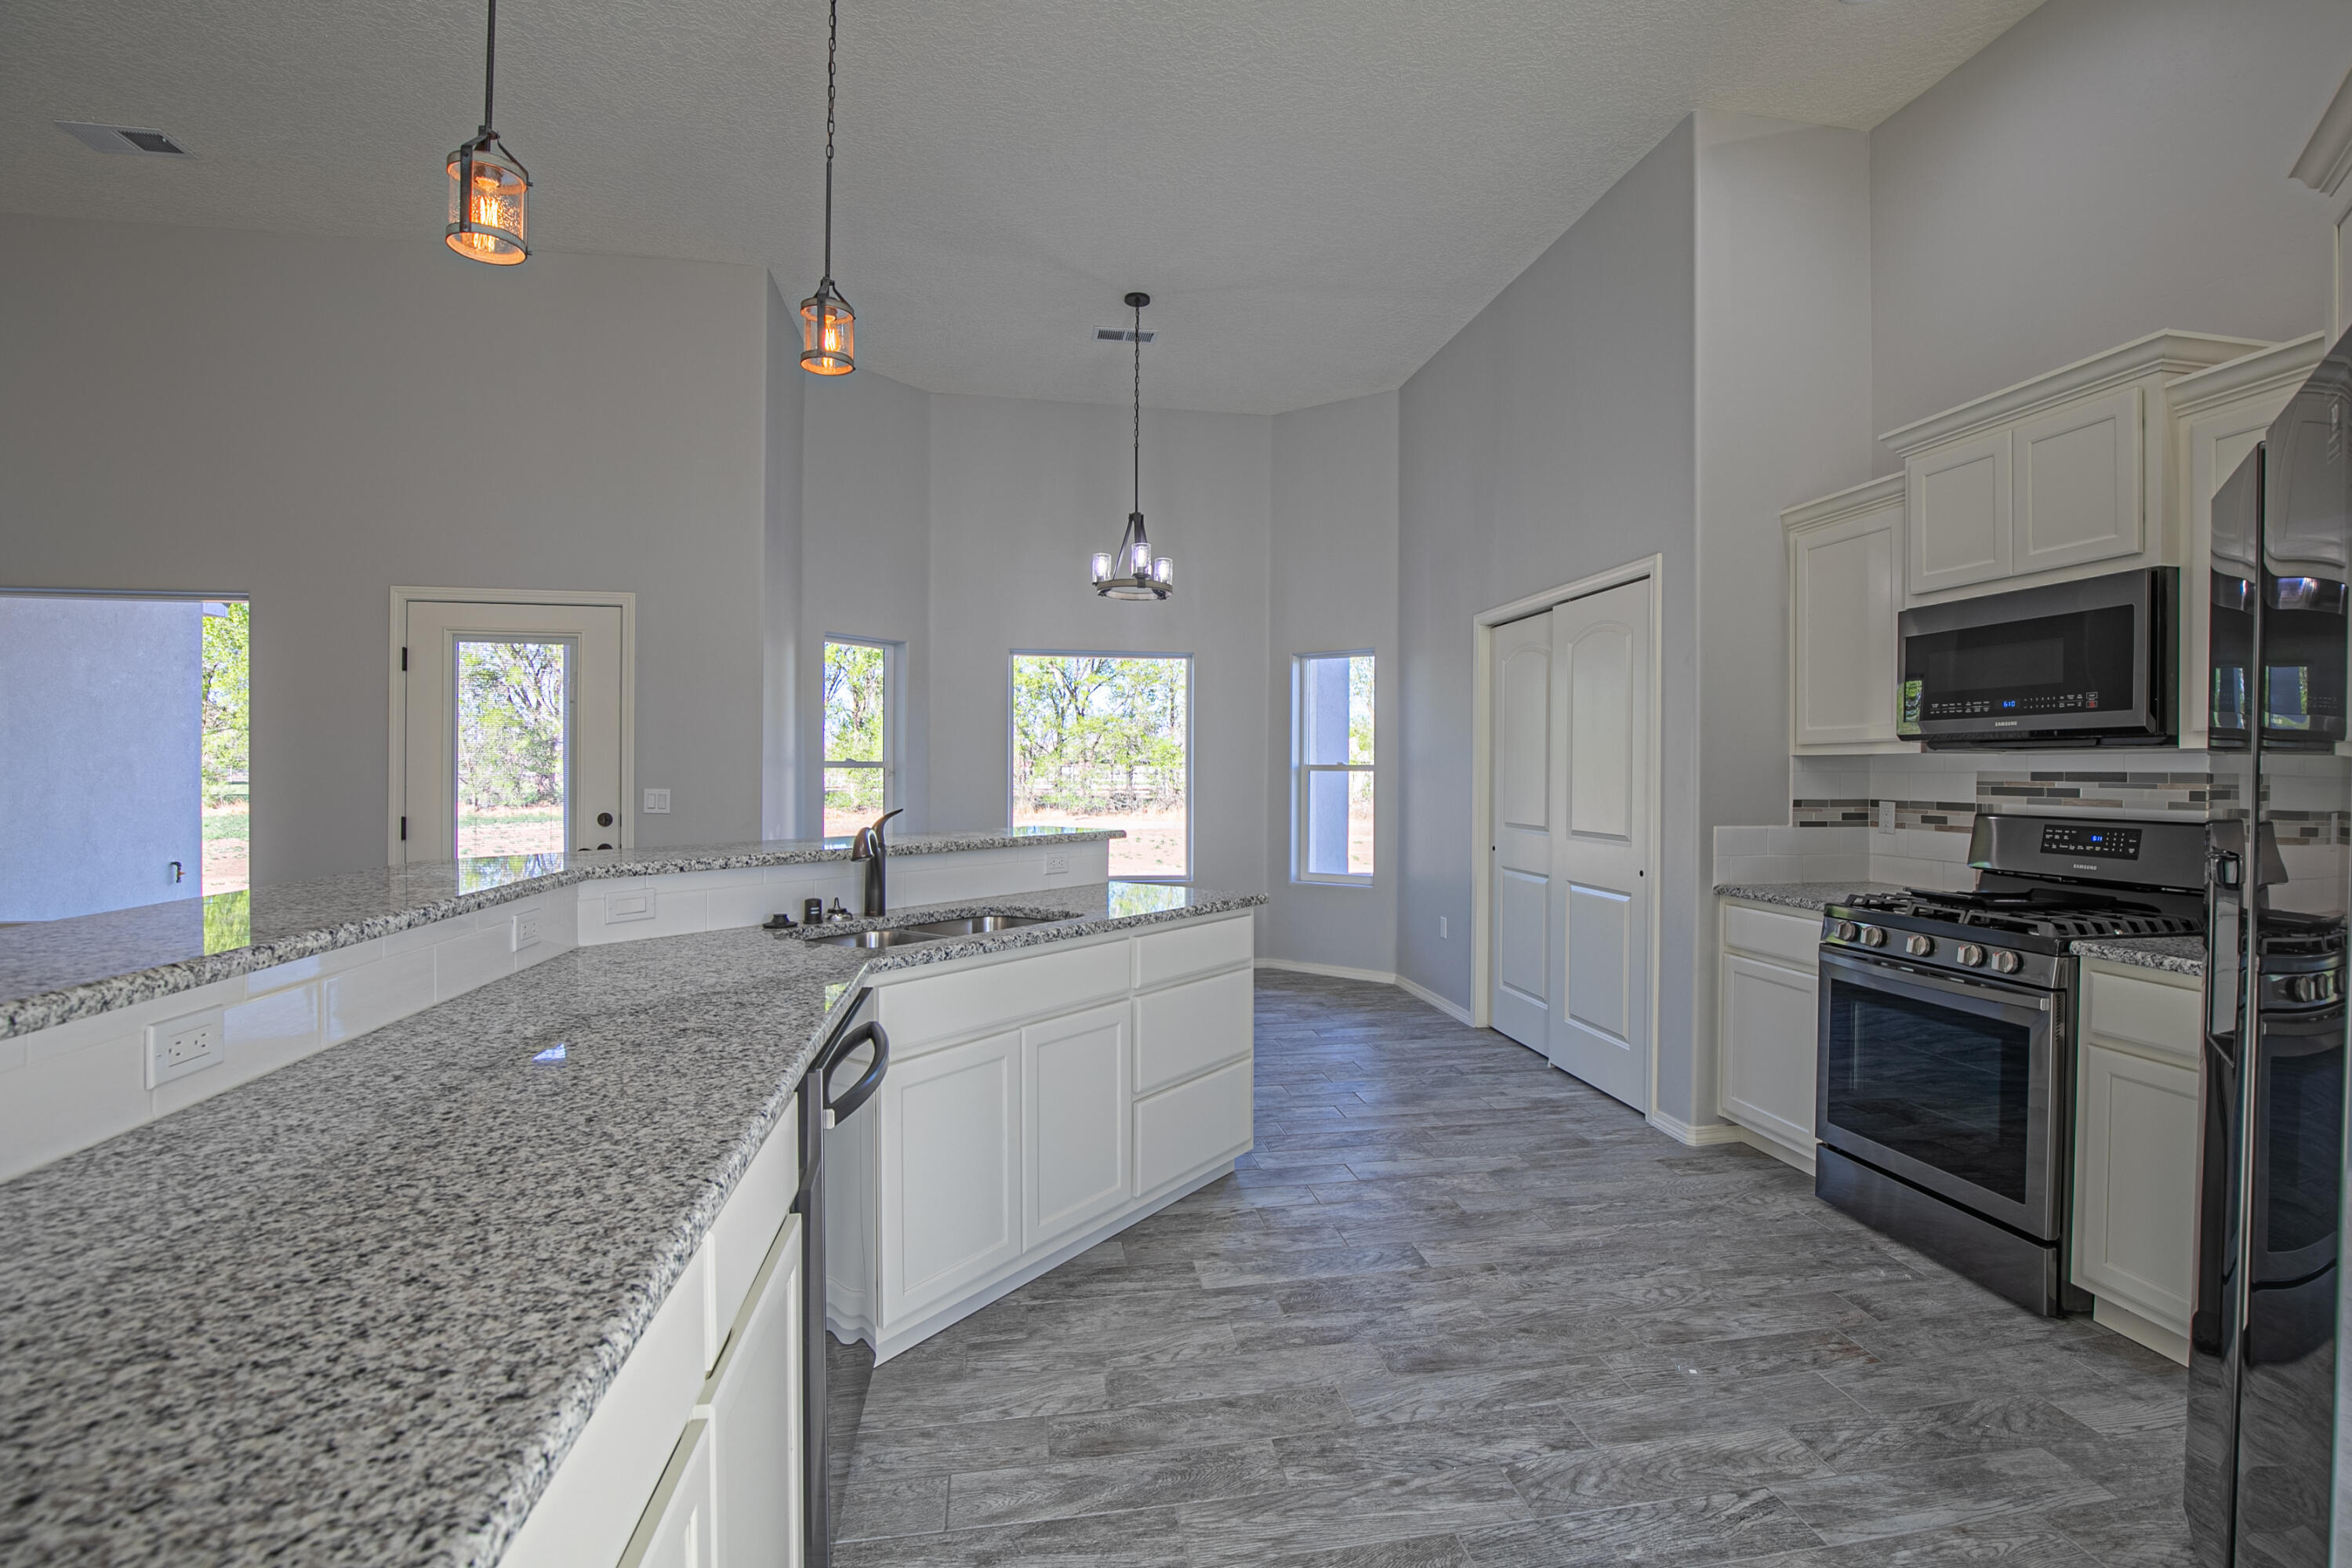 Welcome to this exquisite custom home (Montana) situated on 1.88 acres of beautiful valley land. This home features master suite with large walk in closet, separate shower, & double sinks. 3 Bdrm w/office & closet so possible 4 bdrm. The kitchen is complete with an abundance of custom cabinets, including island, a sizable pantry & Stainless/black appliances, granite counters tops throughout and semi glodd paint. The open living room leads out to the back covered patio which is perfect for entertaining. This is a spec home and all features, colors and  designs have been pre-determined. Photos of same floor plan (different address)  but different colors and features may vary.